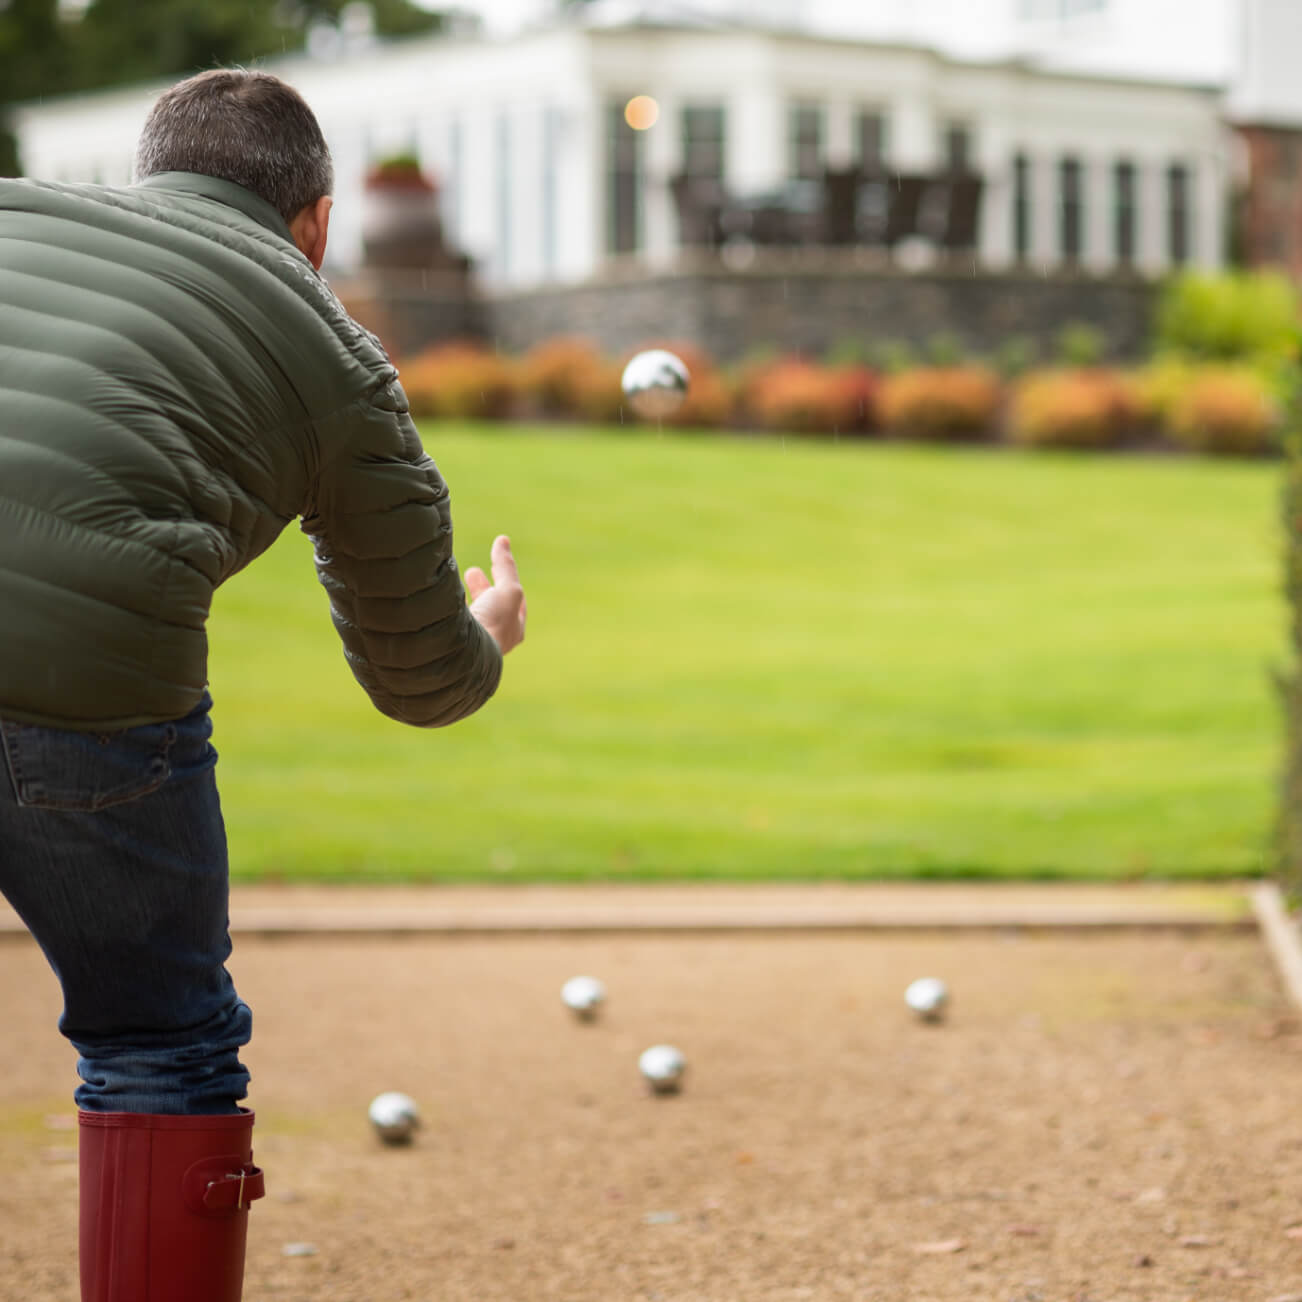 5f3659dd672e7-Boules at Linthwaite House (3)